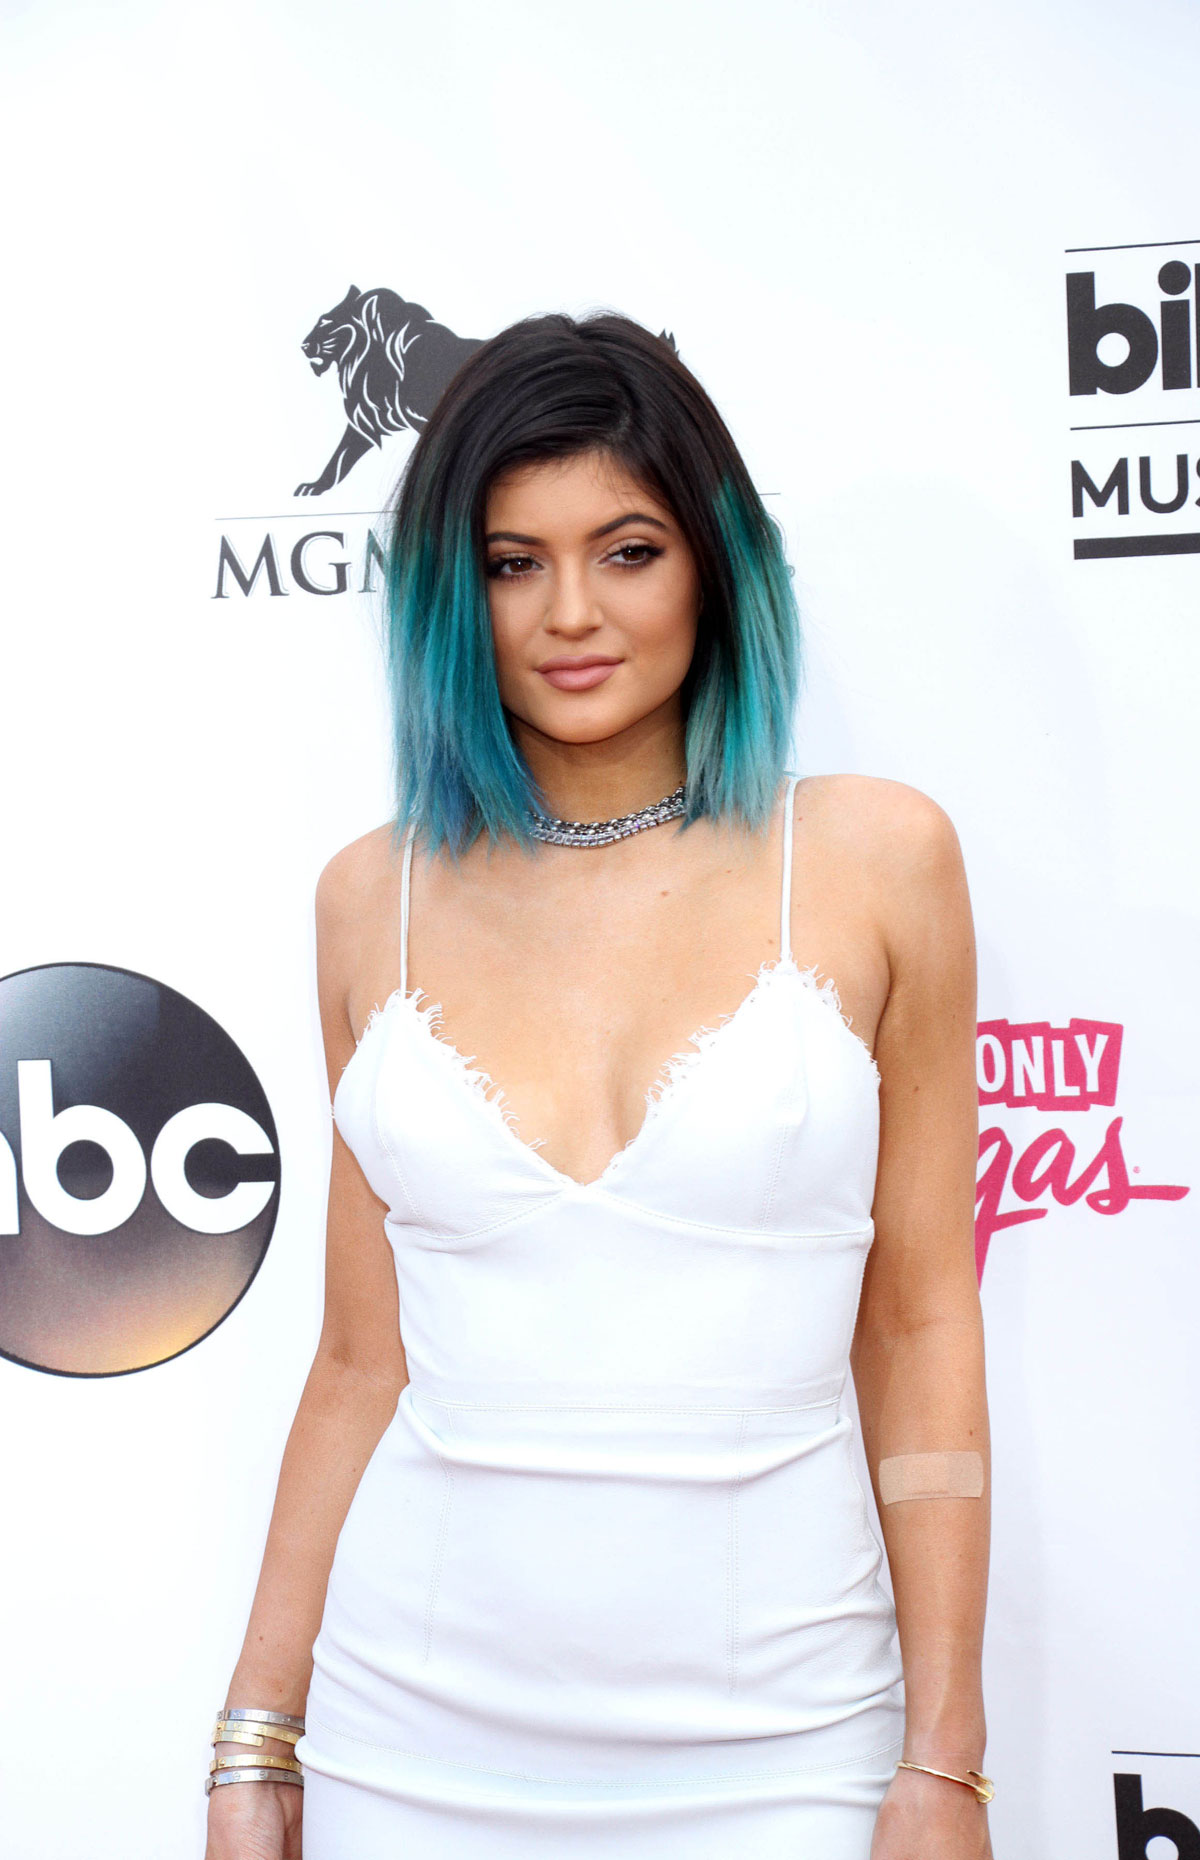 Kylie Jenner attends 2014 Billboard Music Awards